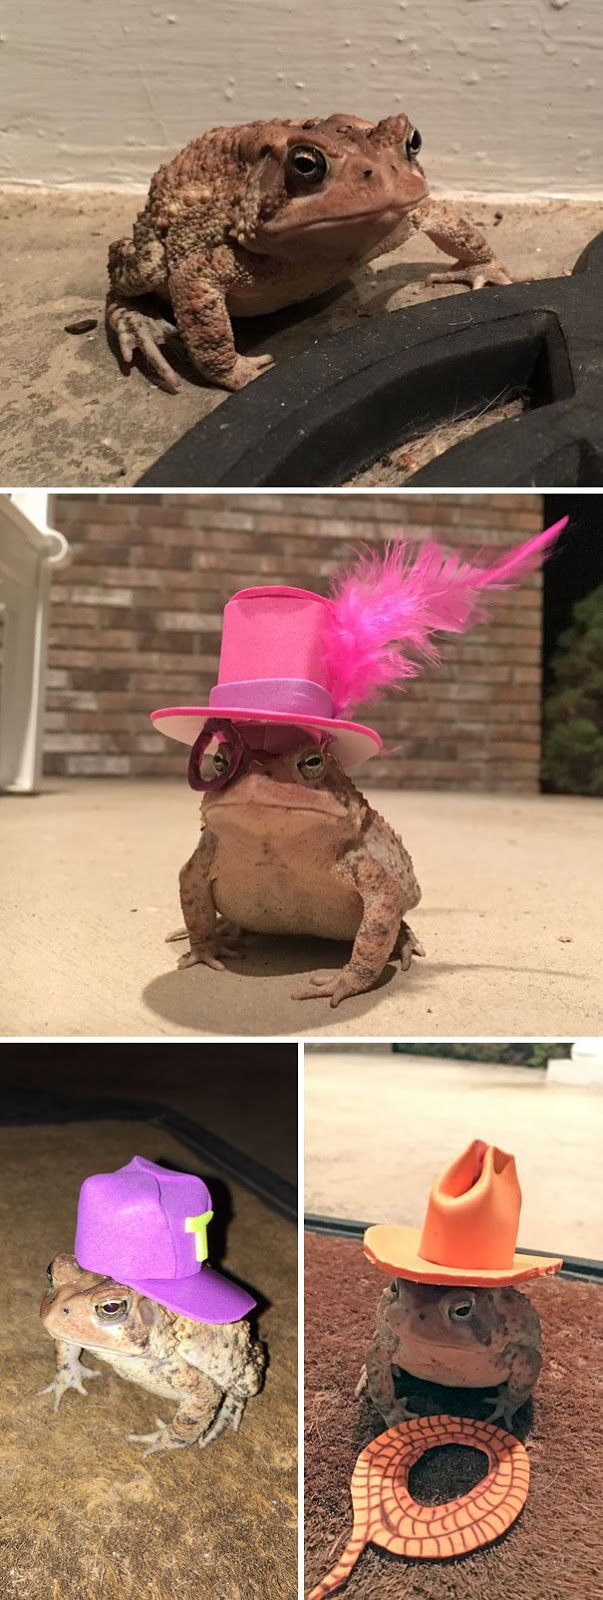 40 Heartwarming Pictures Of Animals - This Toad Kept Coming To My Porch, So I Started Making Him Tiny Hats